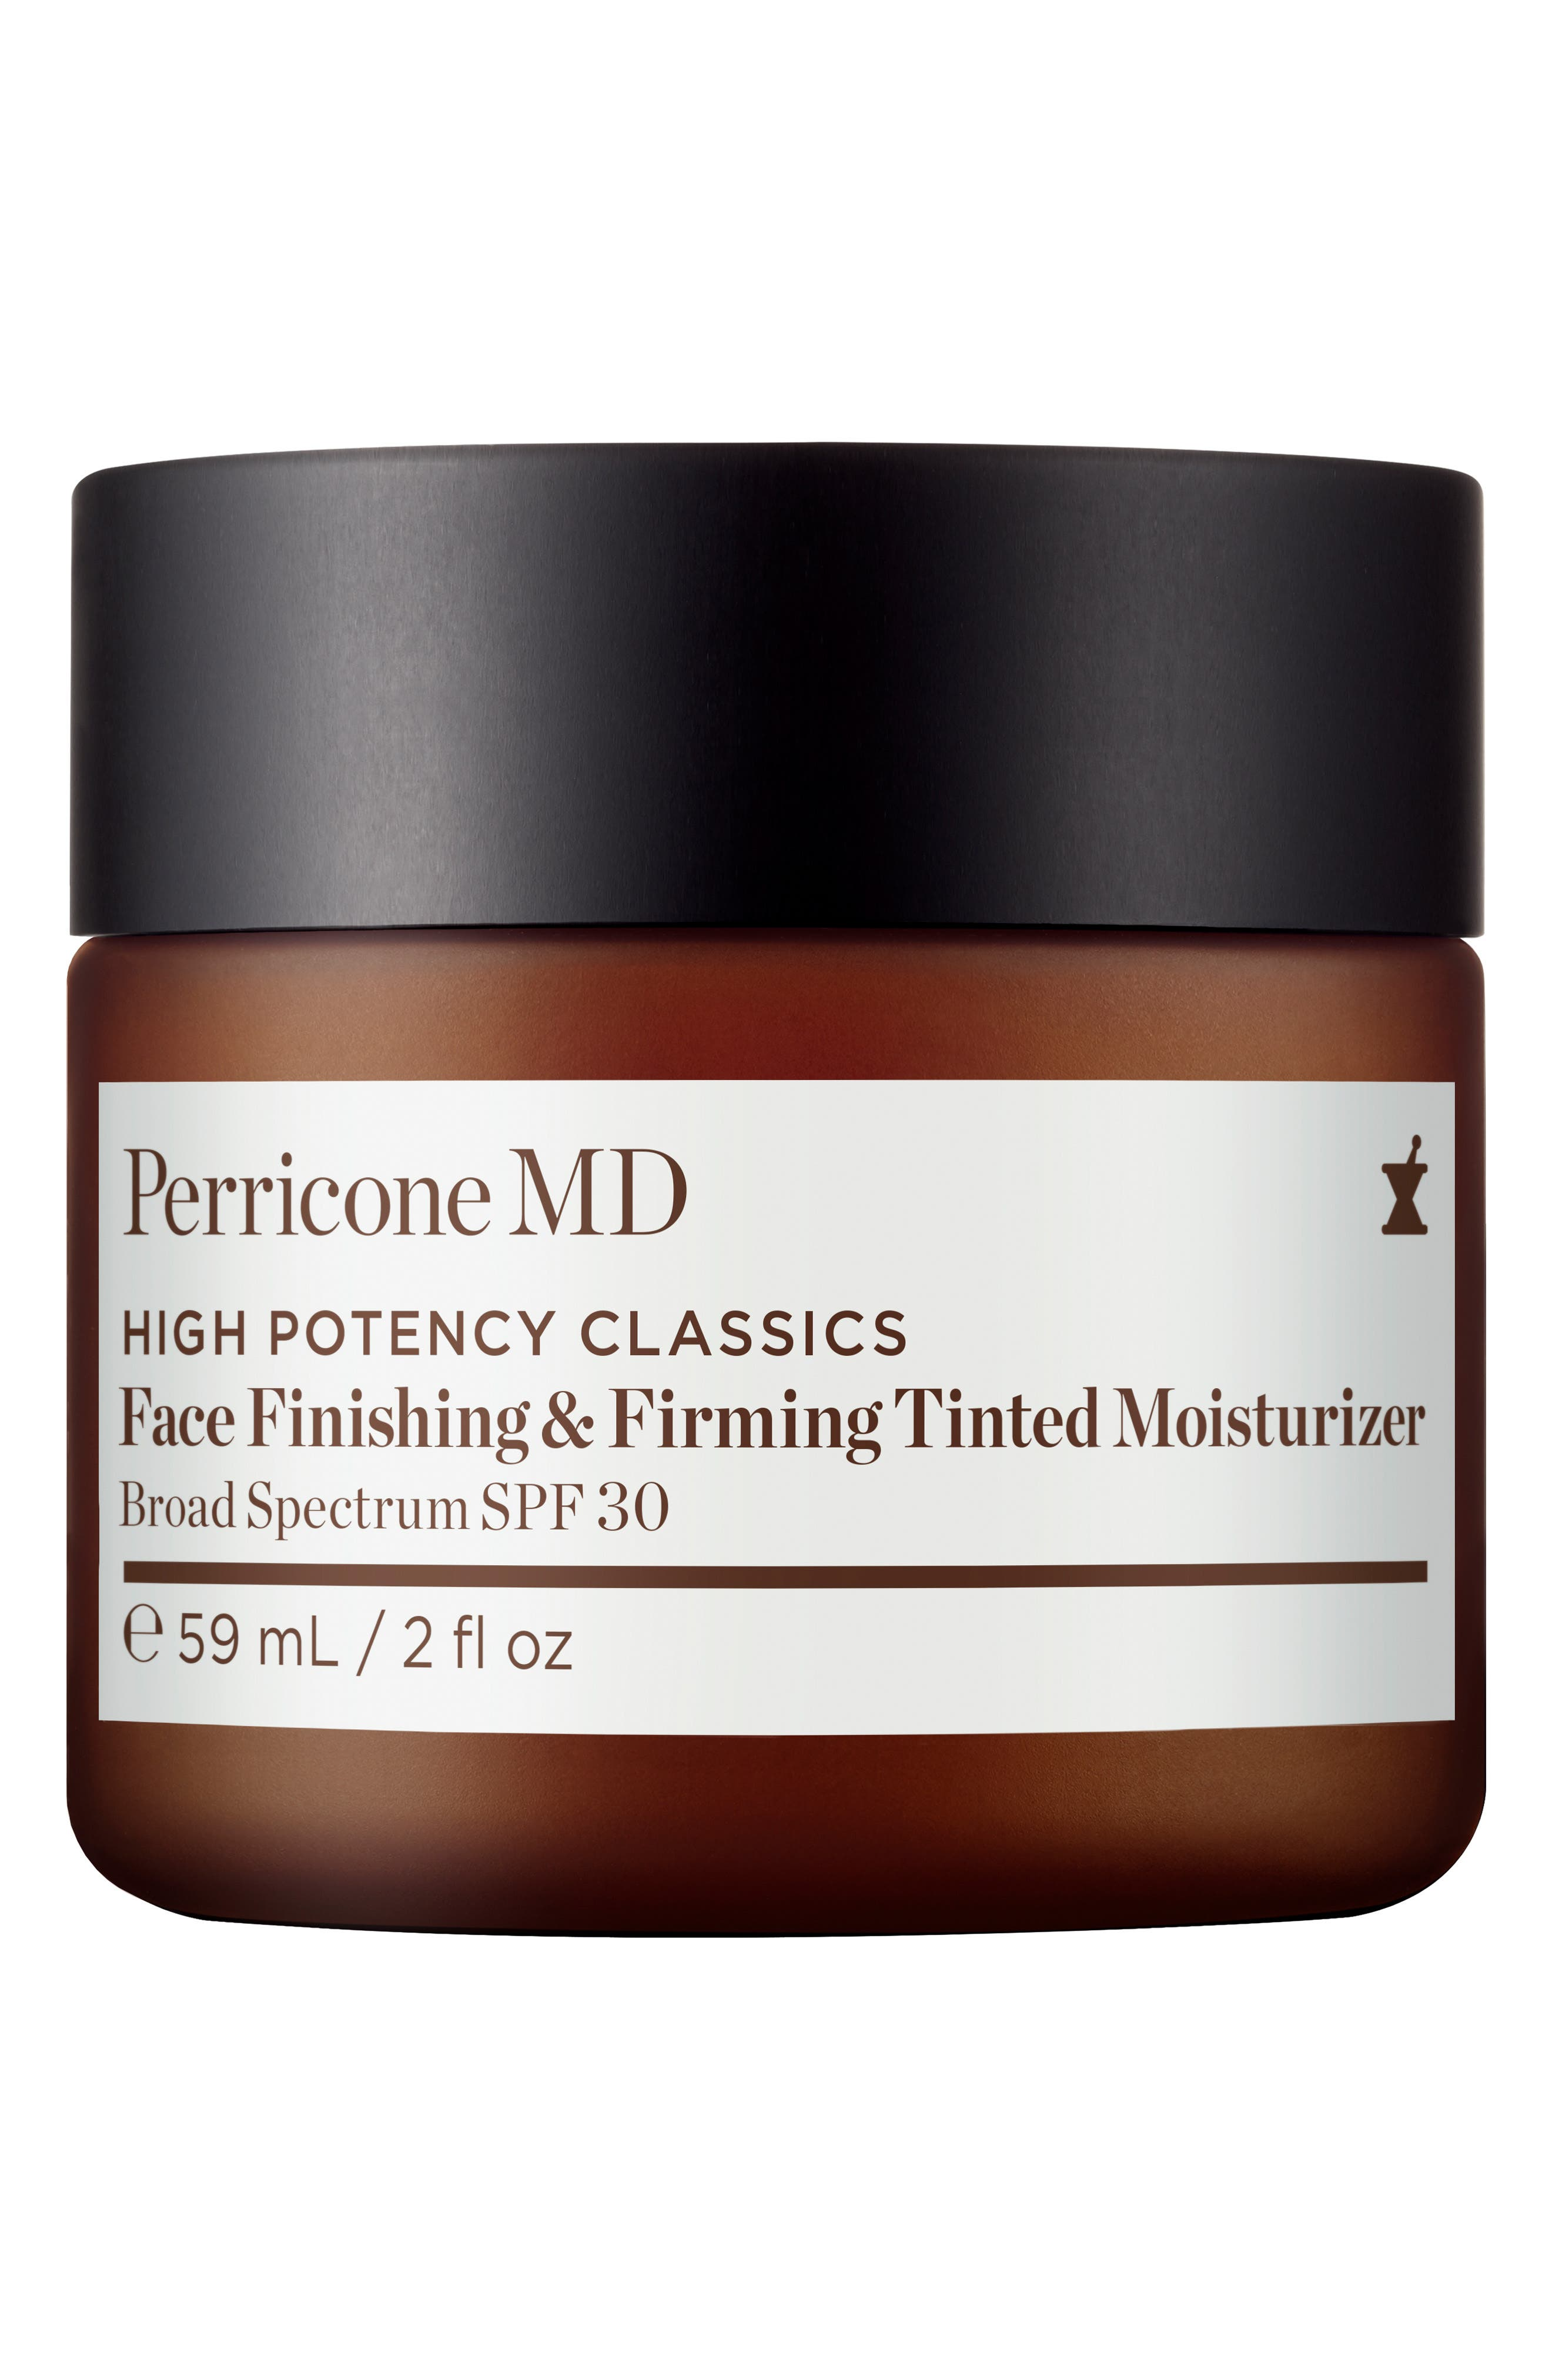 High Potency Classics Face Finishing & Firming Tinted Moisturizer SPF 30 | Nordstrom